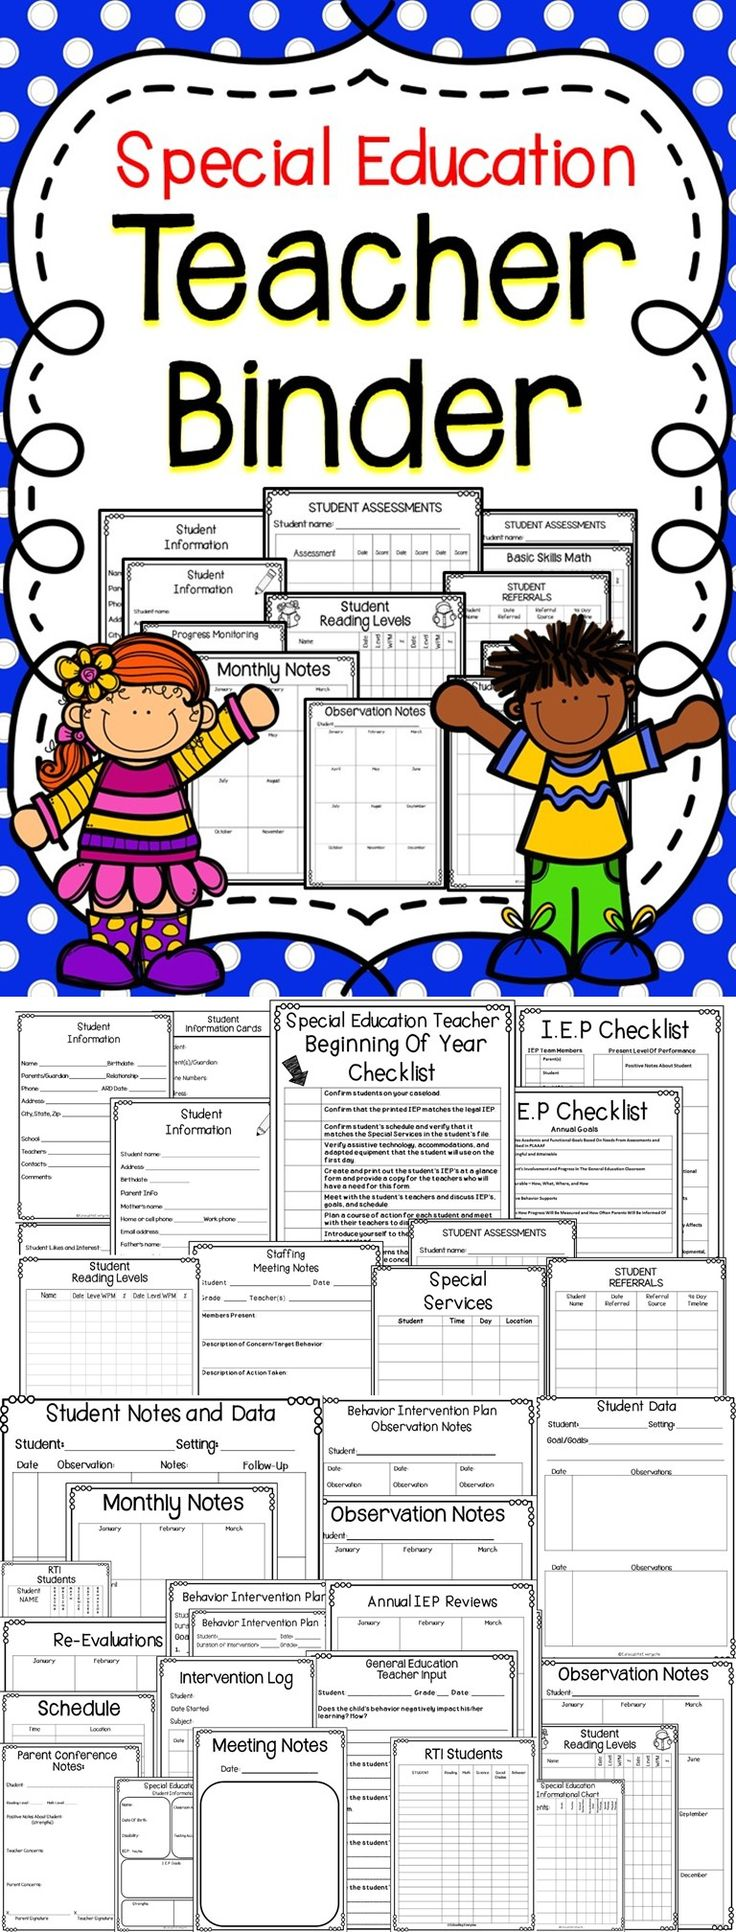 Stay Organized Throughout The School Year With This Special Education Teacher Binder!  This Teacher Binder Includes: Checklist, Data Sheets, Binder Covers, and More!